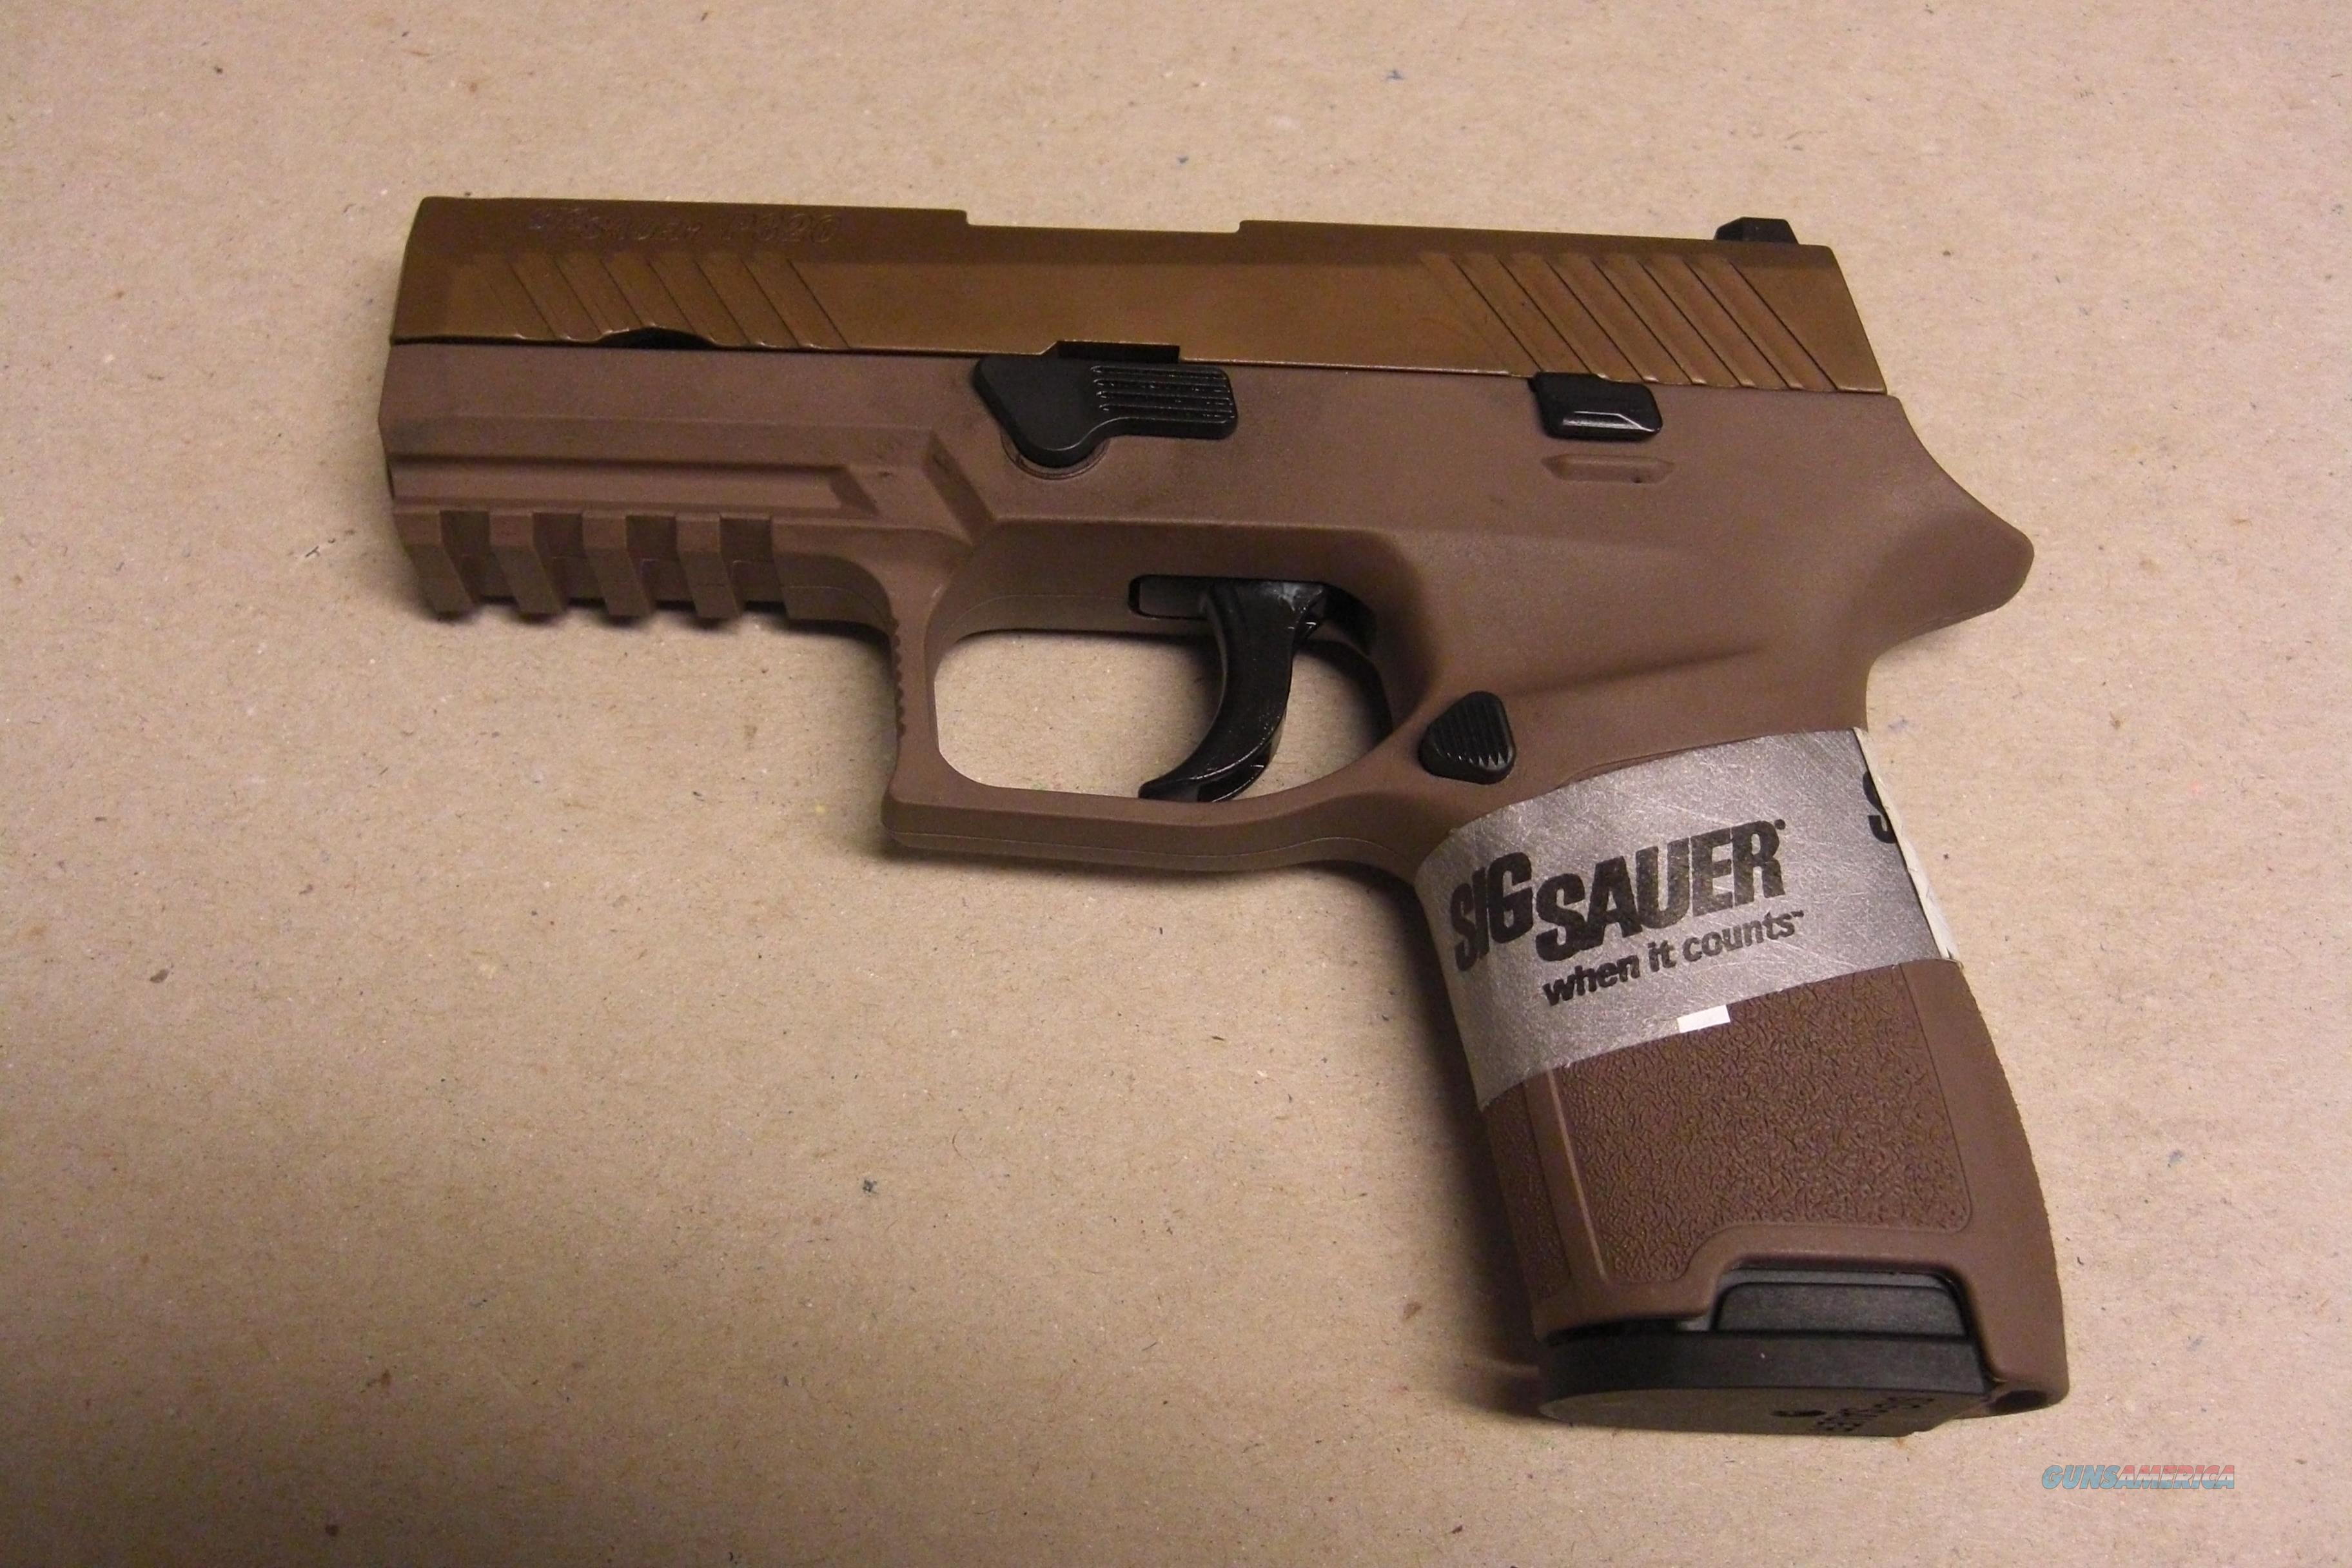 P320 Compact w/overall FDE finish w/night sights, 2 15 rd. mags., compact medium frame  Guns > Pistols > Sig - Sauer/Sigarms Pistols > P320